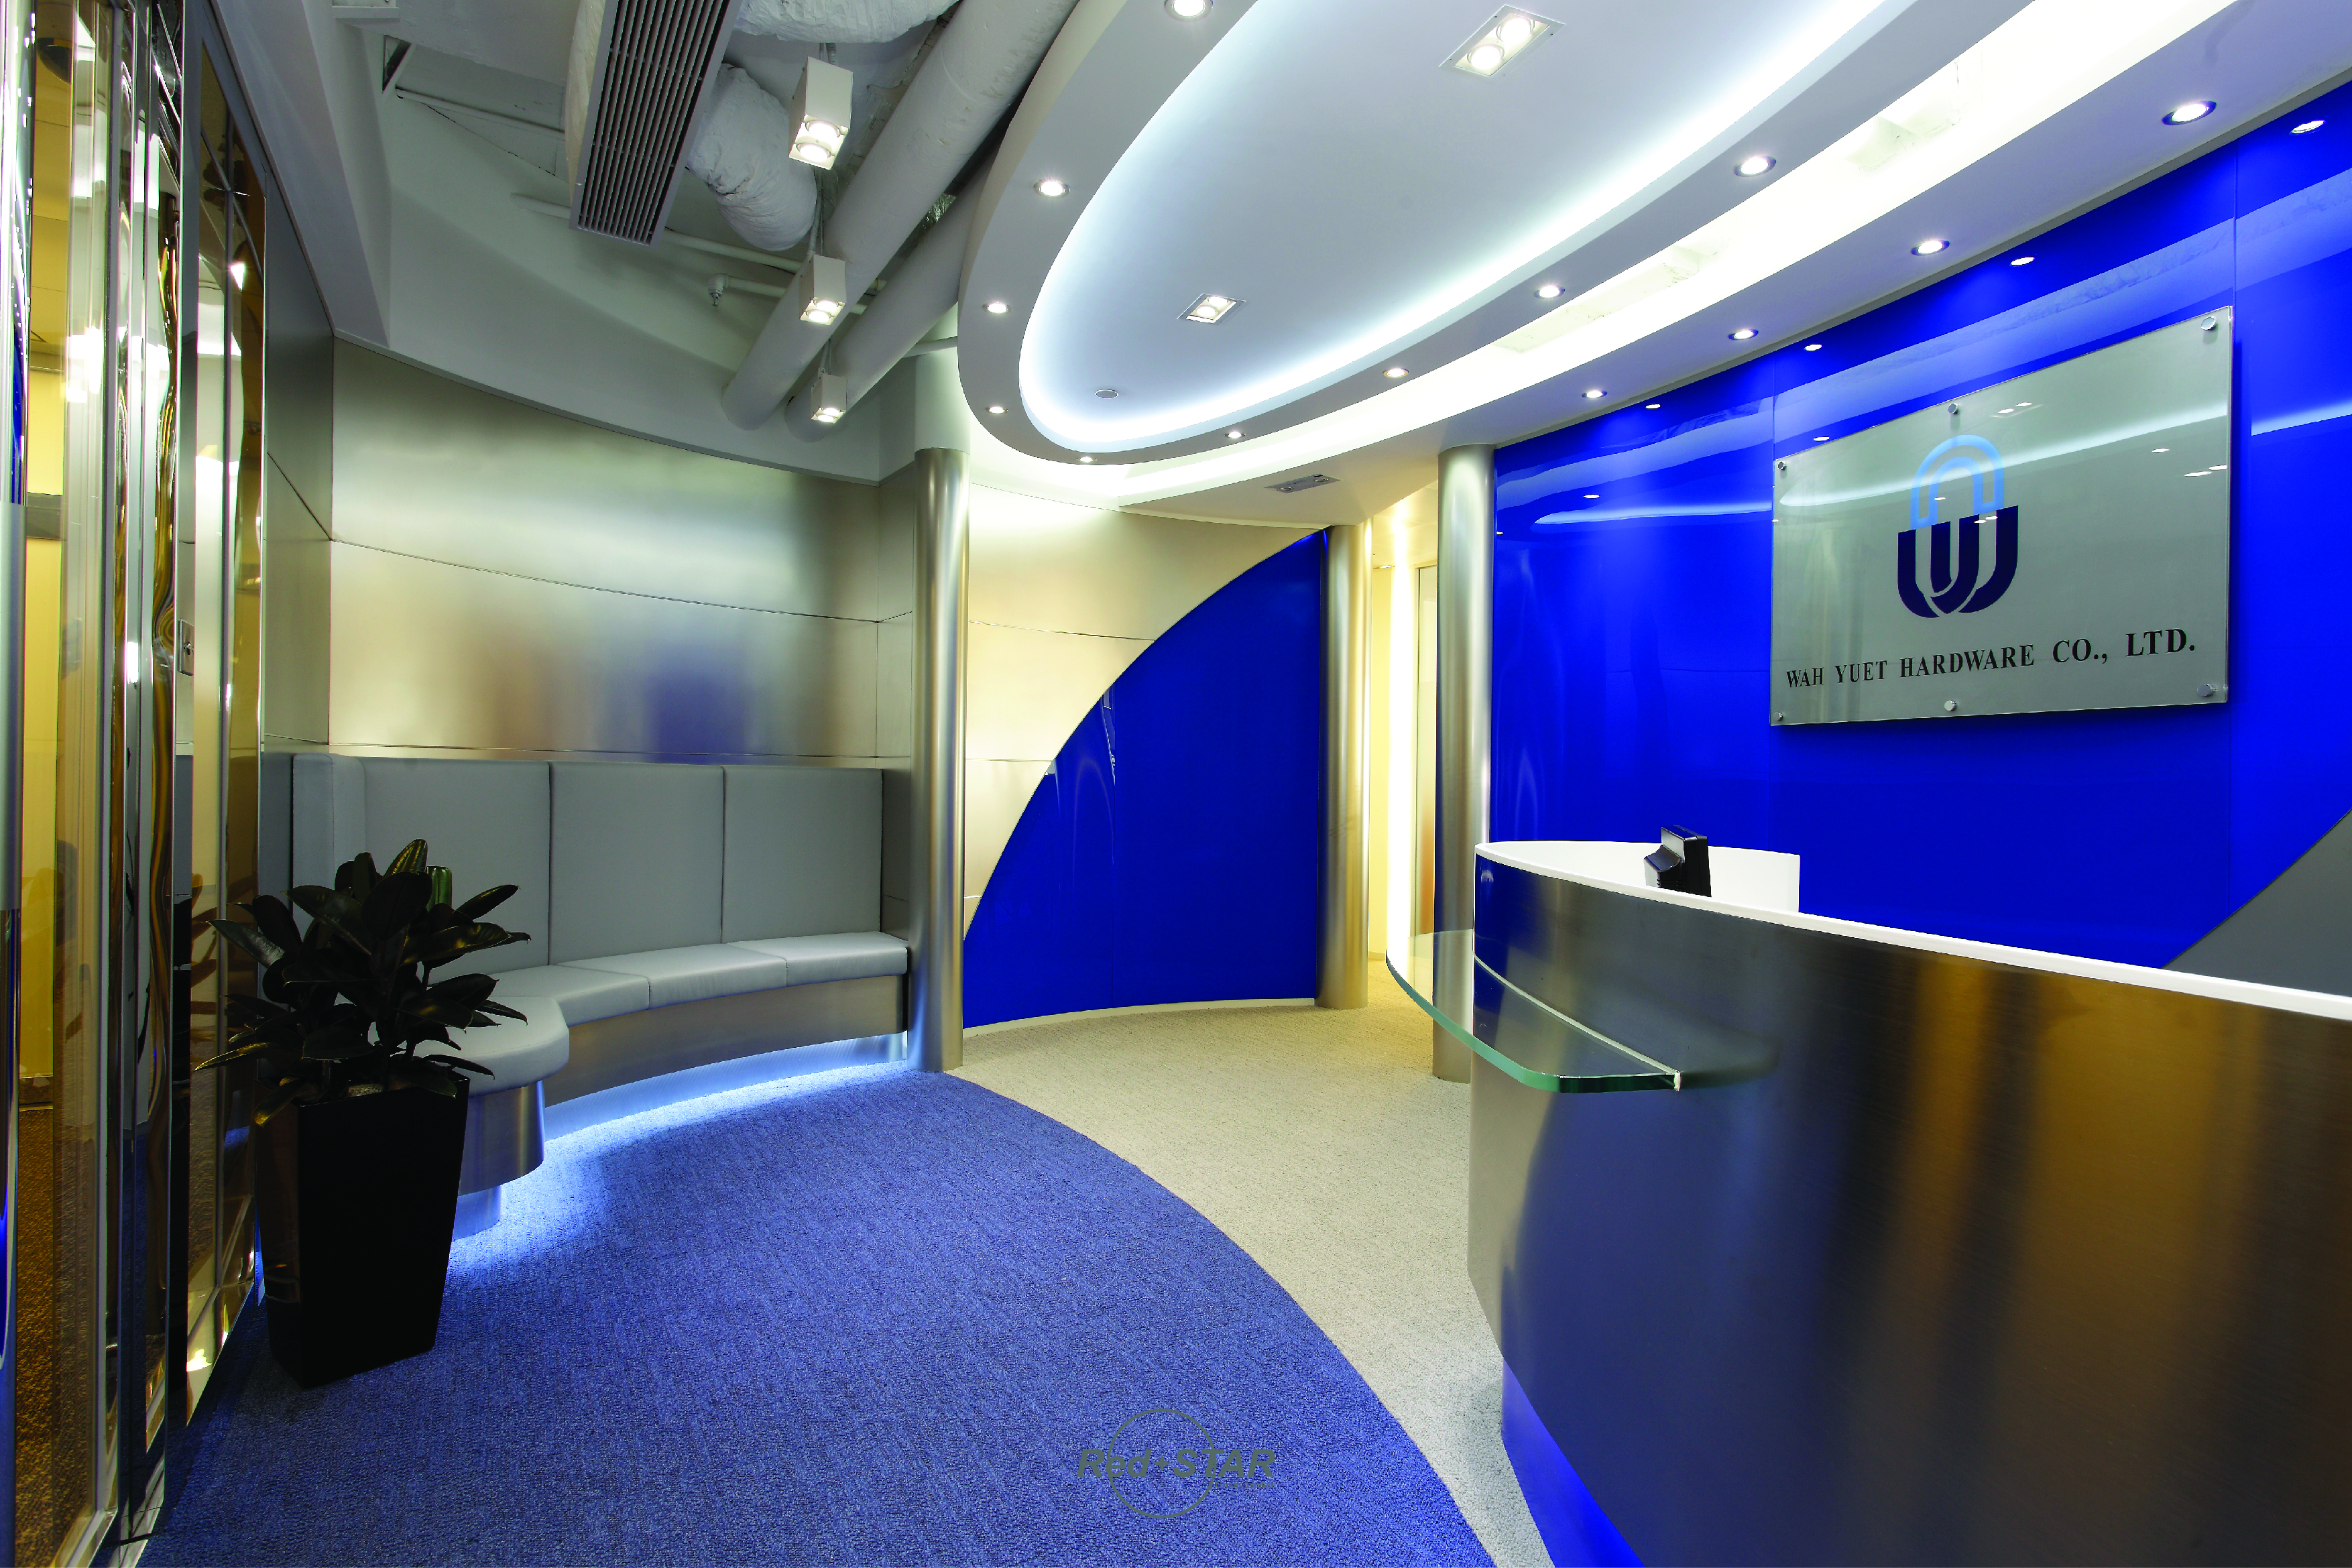 Wah Yuet Hardware Company Limited